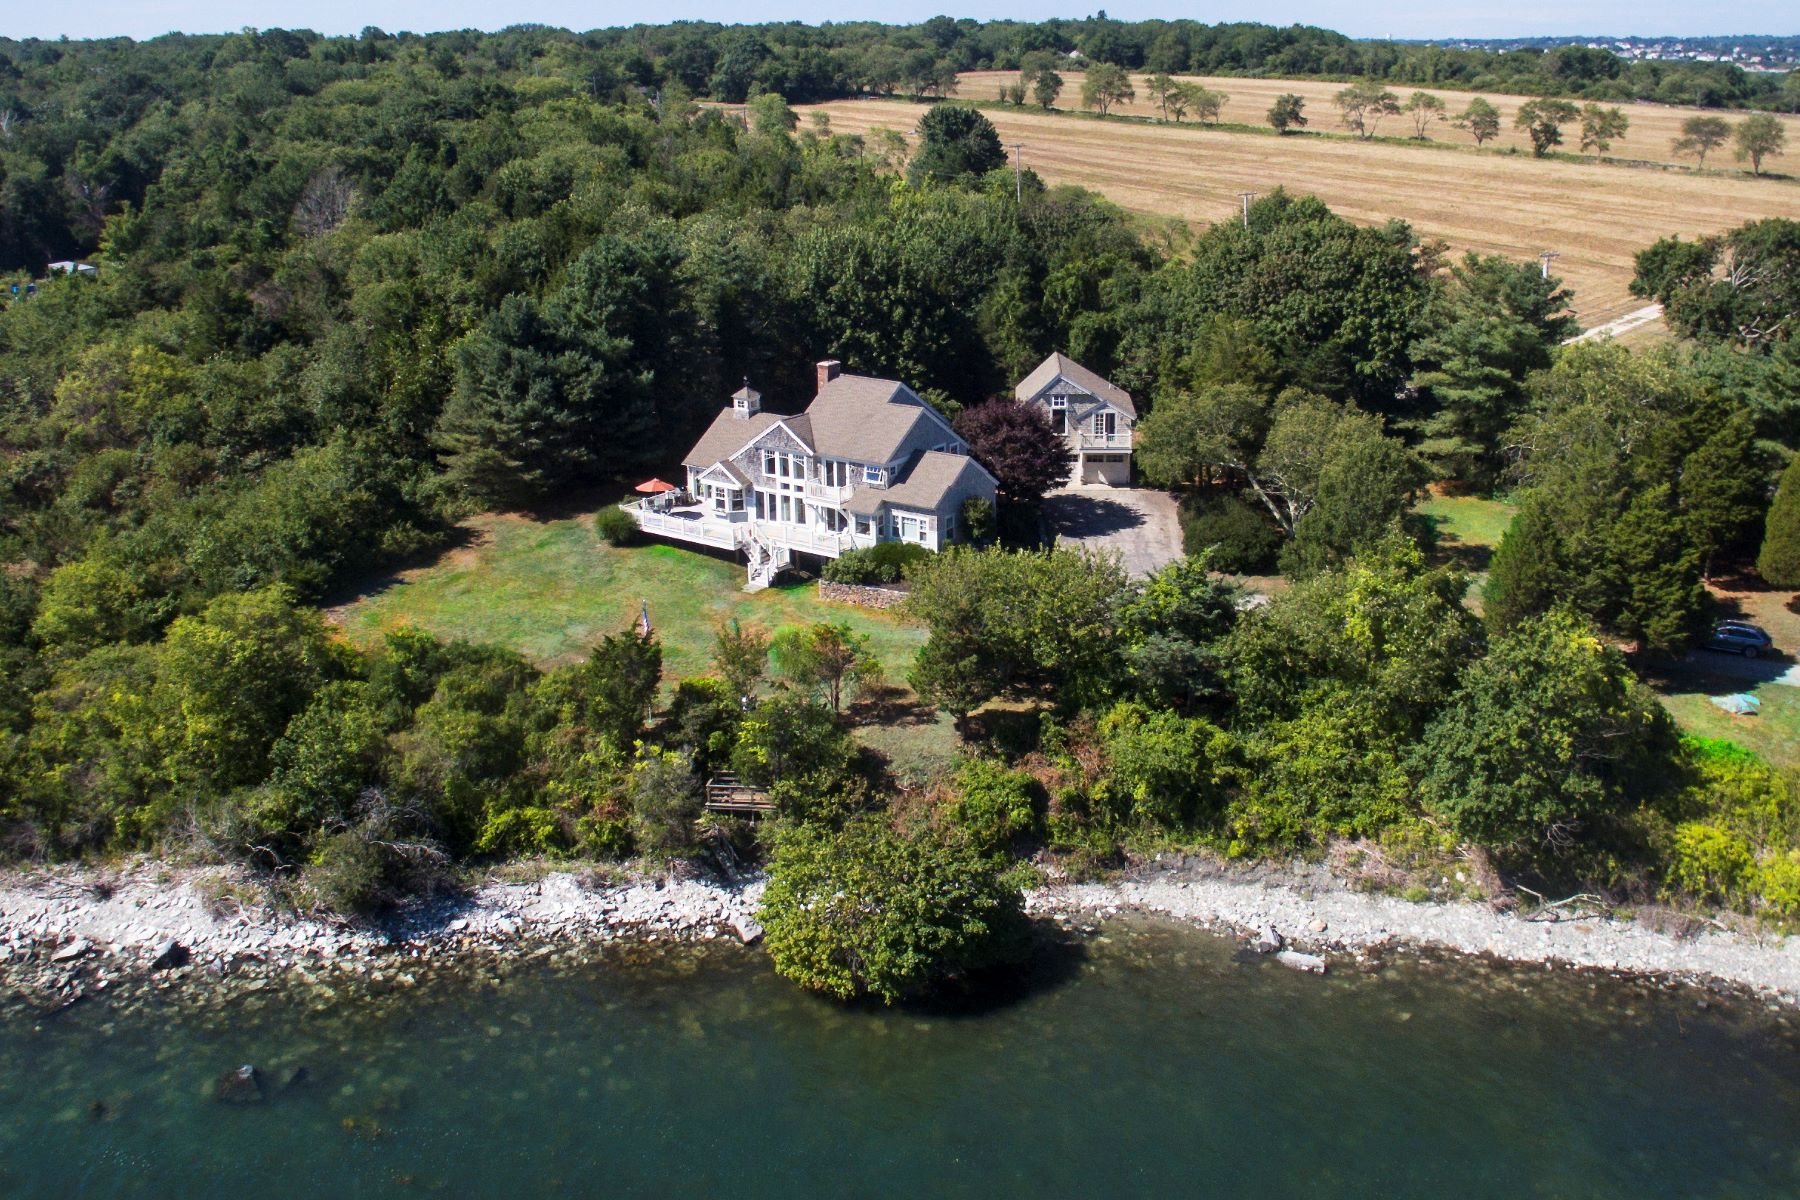 Single Family Home for Sale at Beavertail Point 115 Beavertail Road Jamestown, Rhode Island, 02835 United States